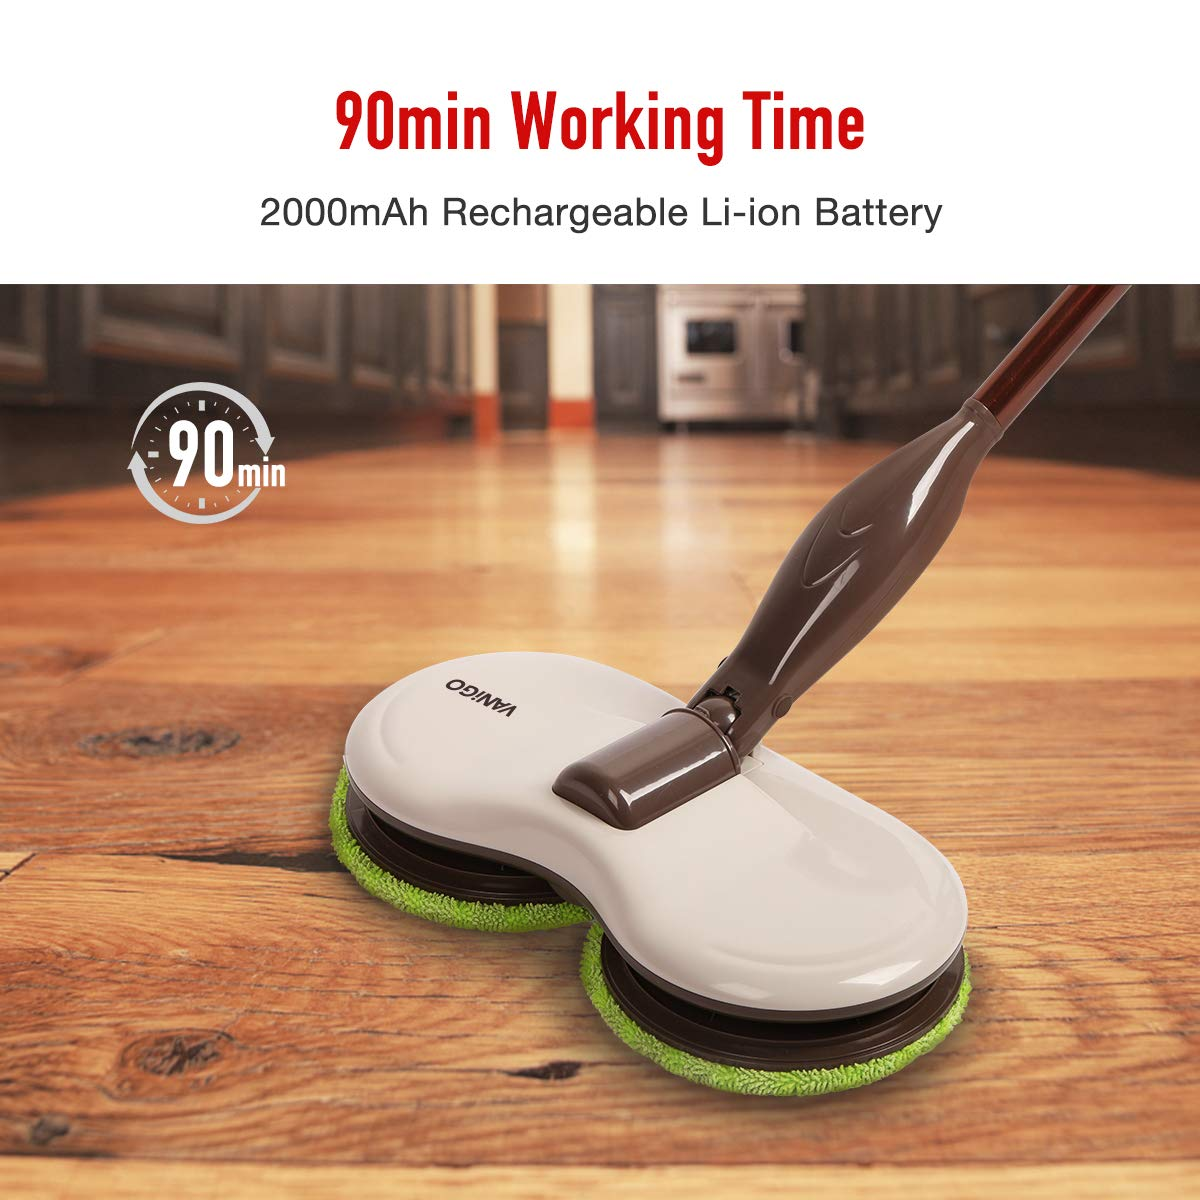 Electric Spin Mop, Cordless Floor Sweeper Cleaner with Dual Spinning Heads and Replaceable Pads for Tile Wood Hard Floor Window by VANiGO (Image #6)